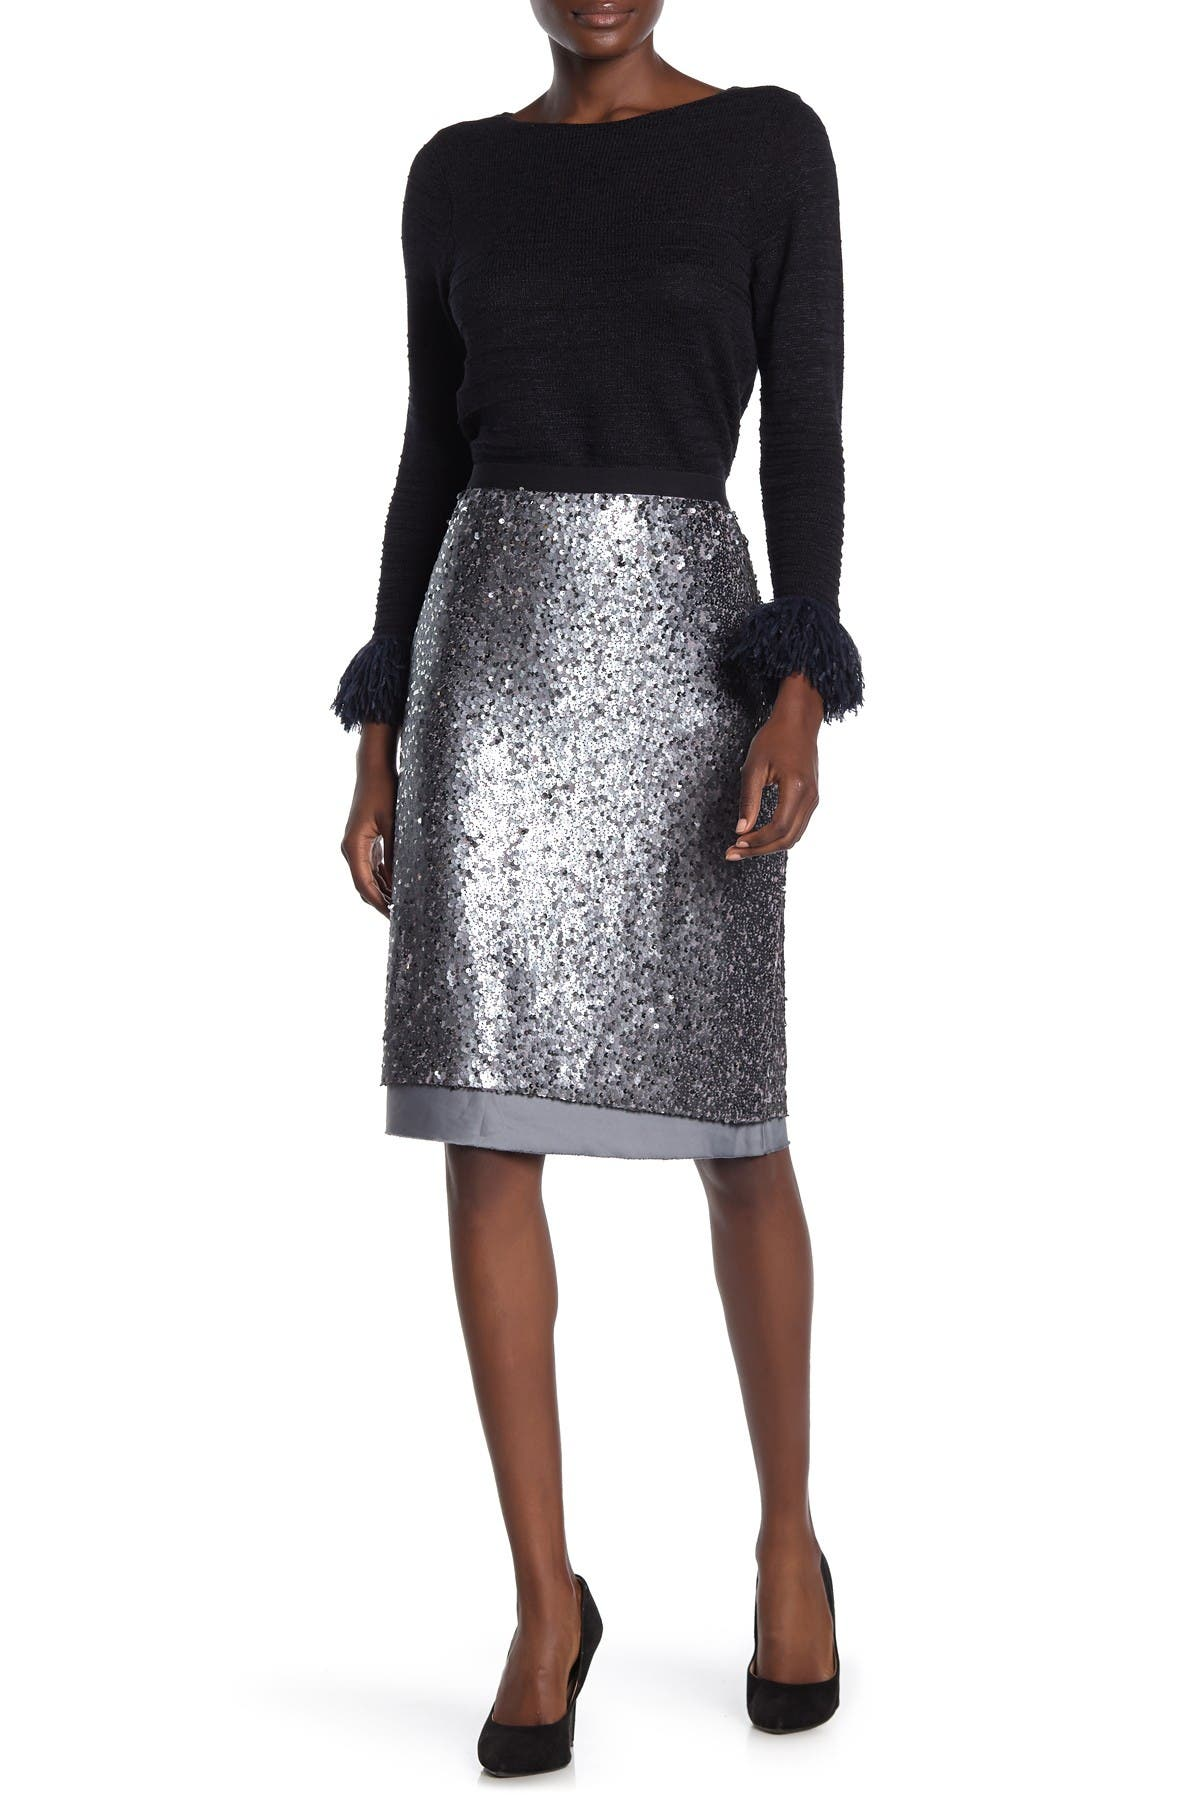 Image of NIC+ZOE Twinkle Night Sequin Skirt